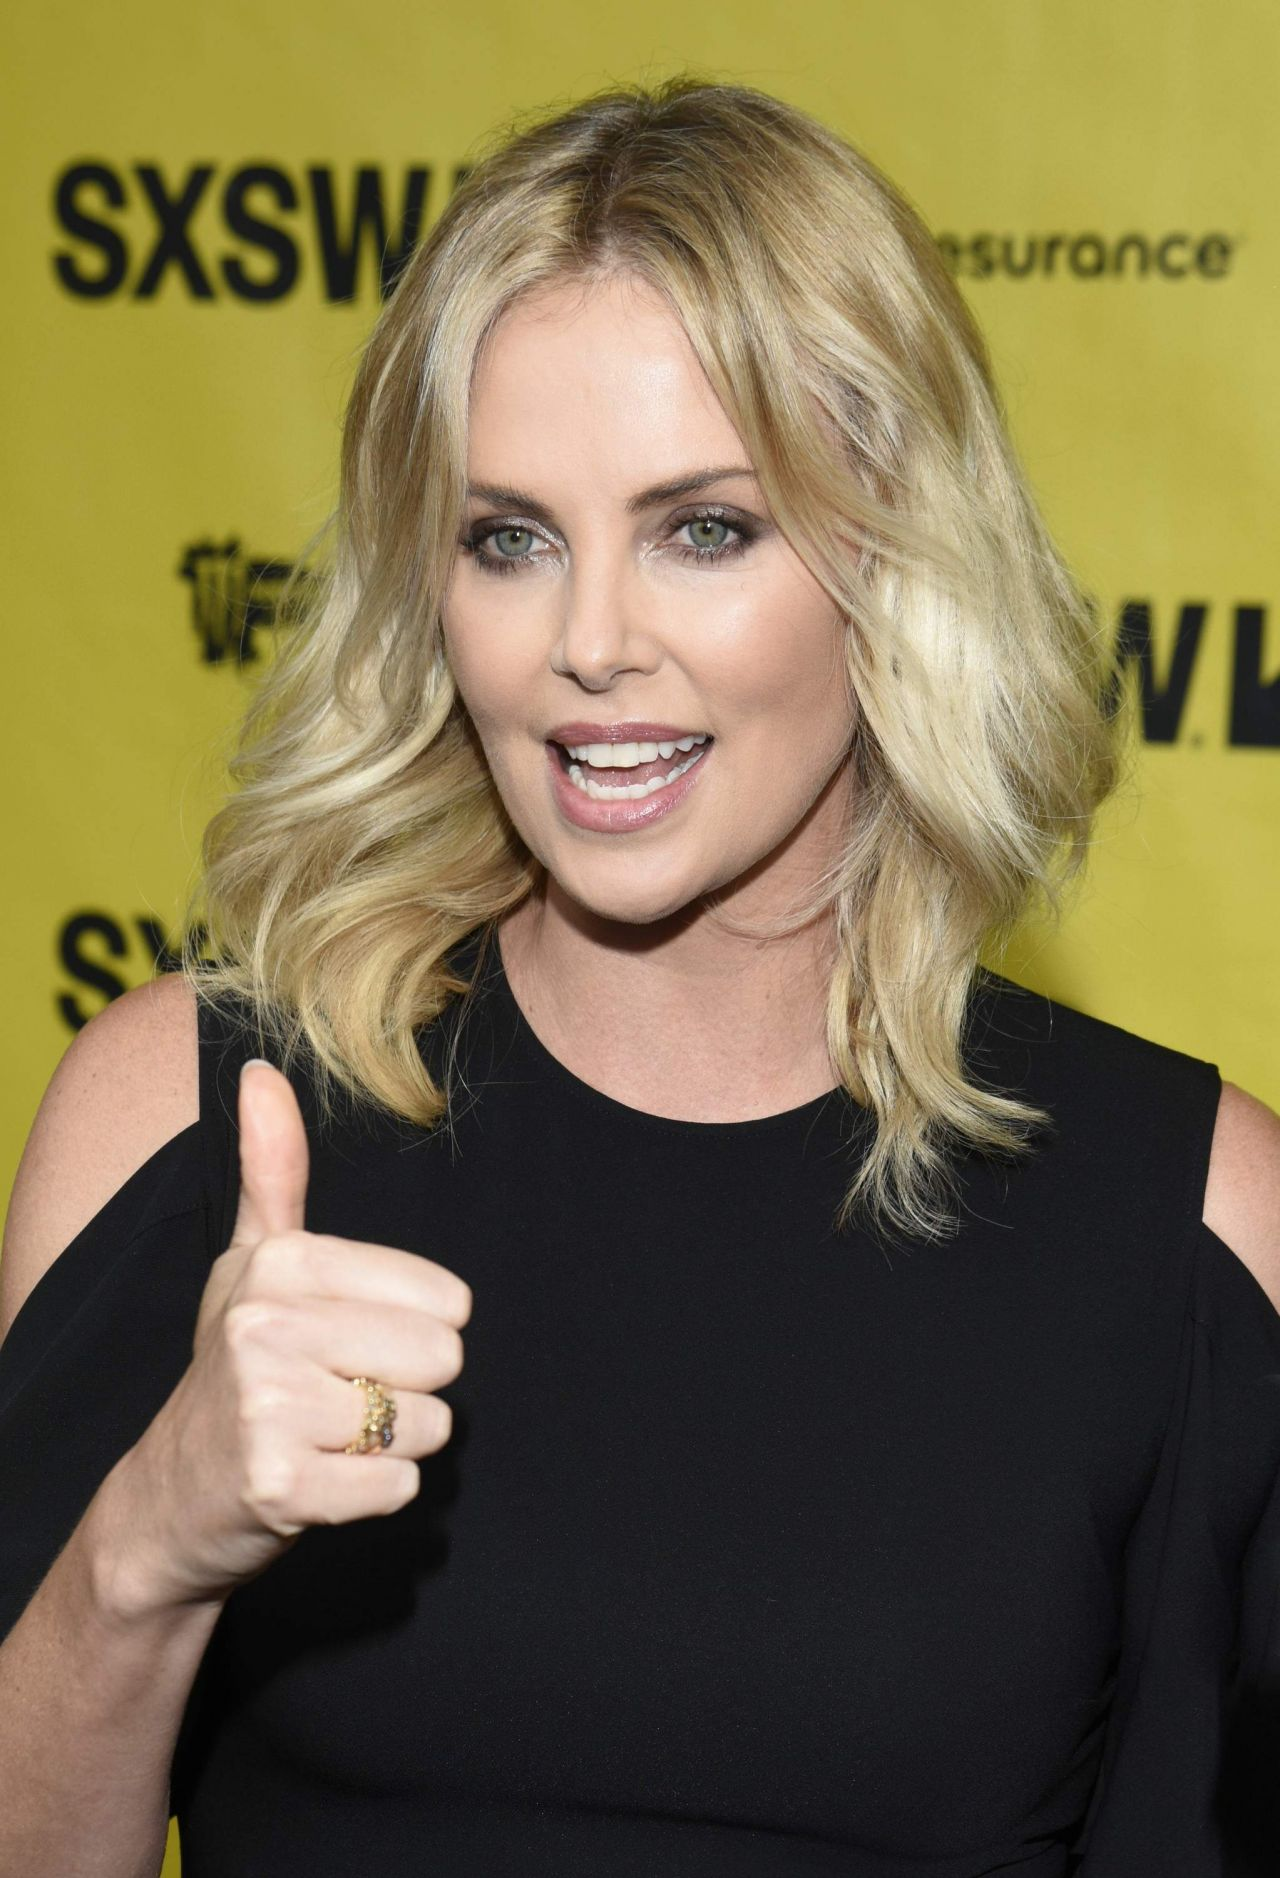 Charlize Theron Atomic Blonde Premiere At 2017 Sxsw Film Festival In Austin